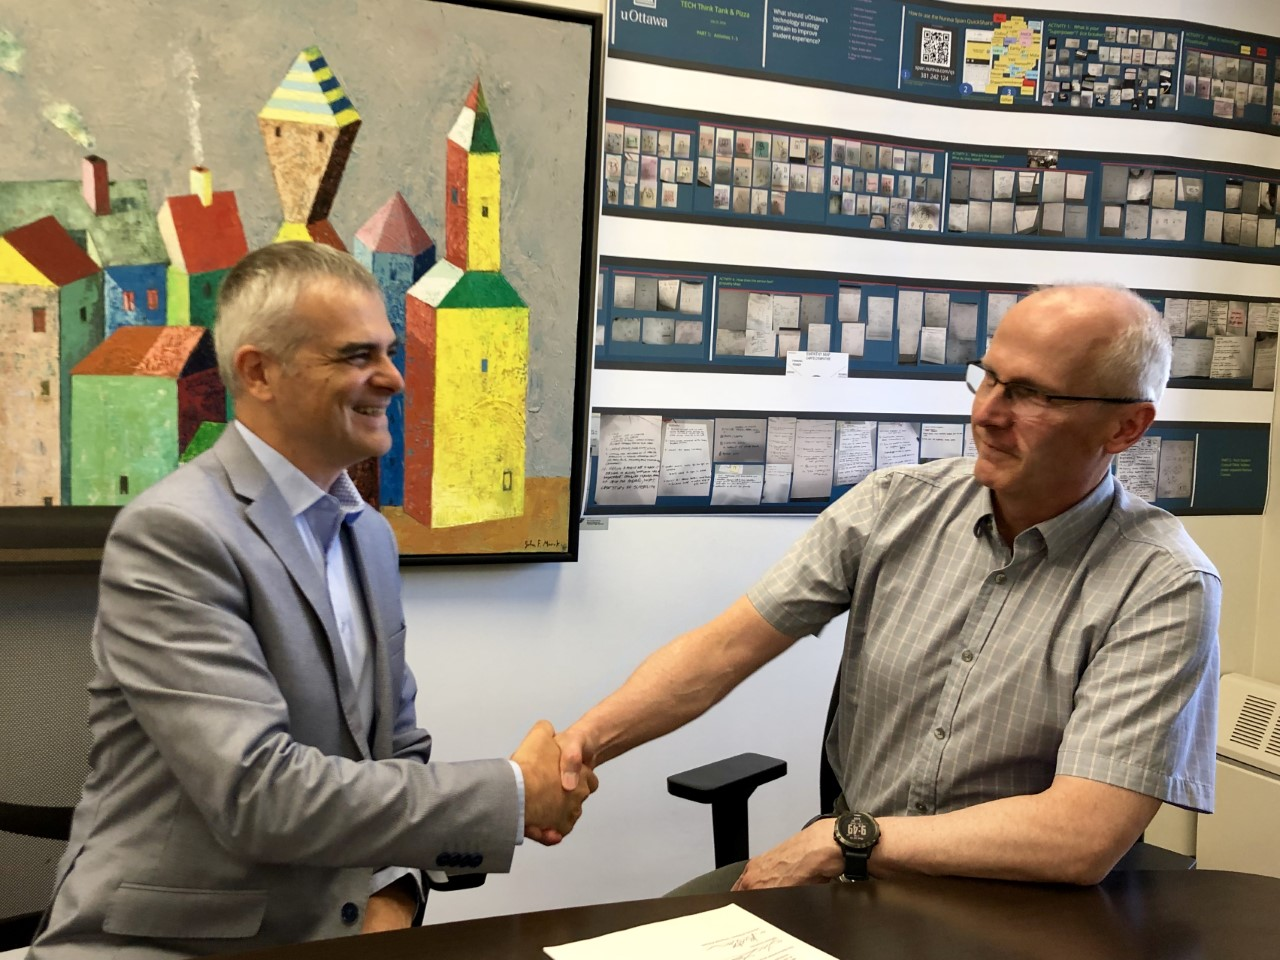 Tim Lott and Martin Bernier shaking hands after signing MOU